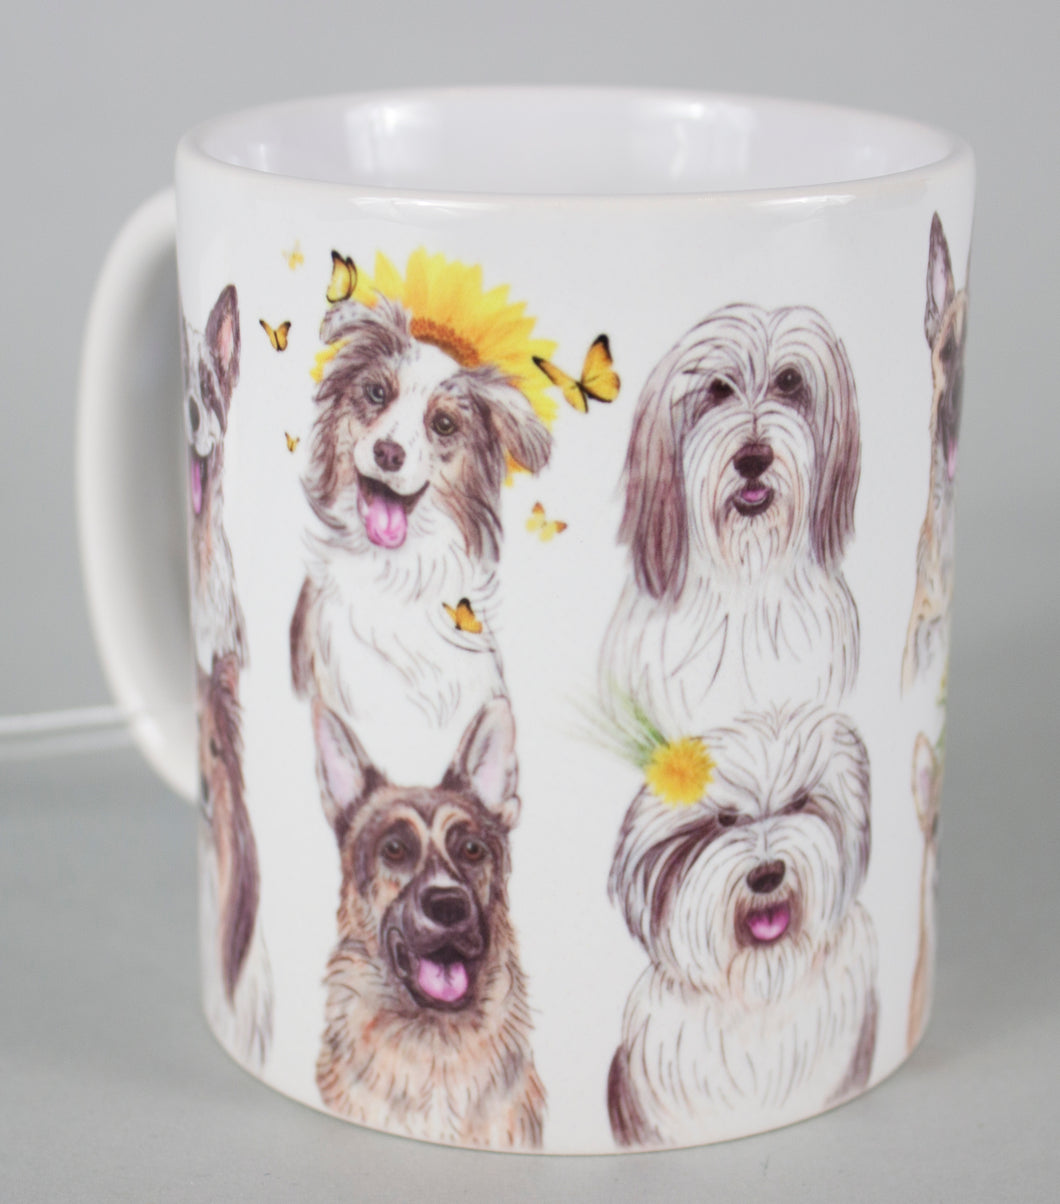 Herding Group Mug